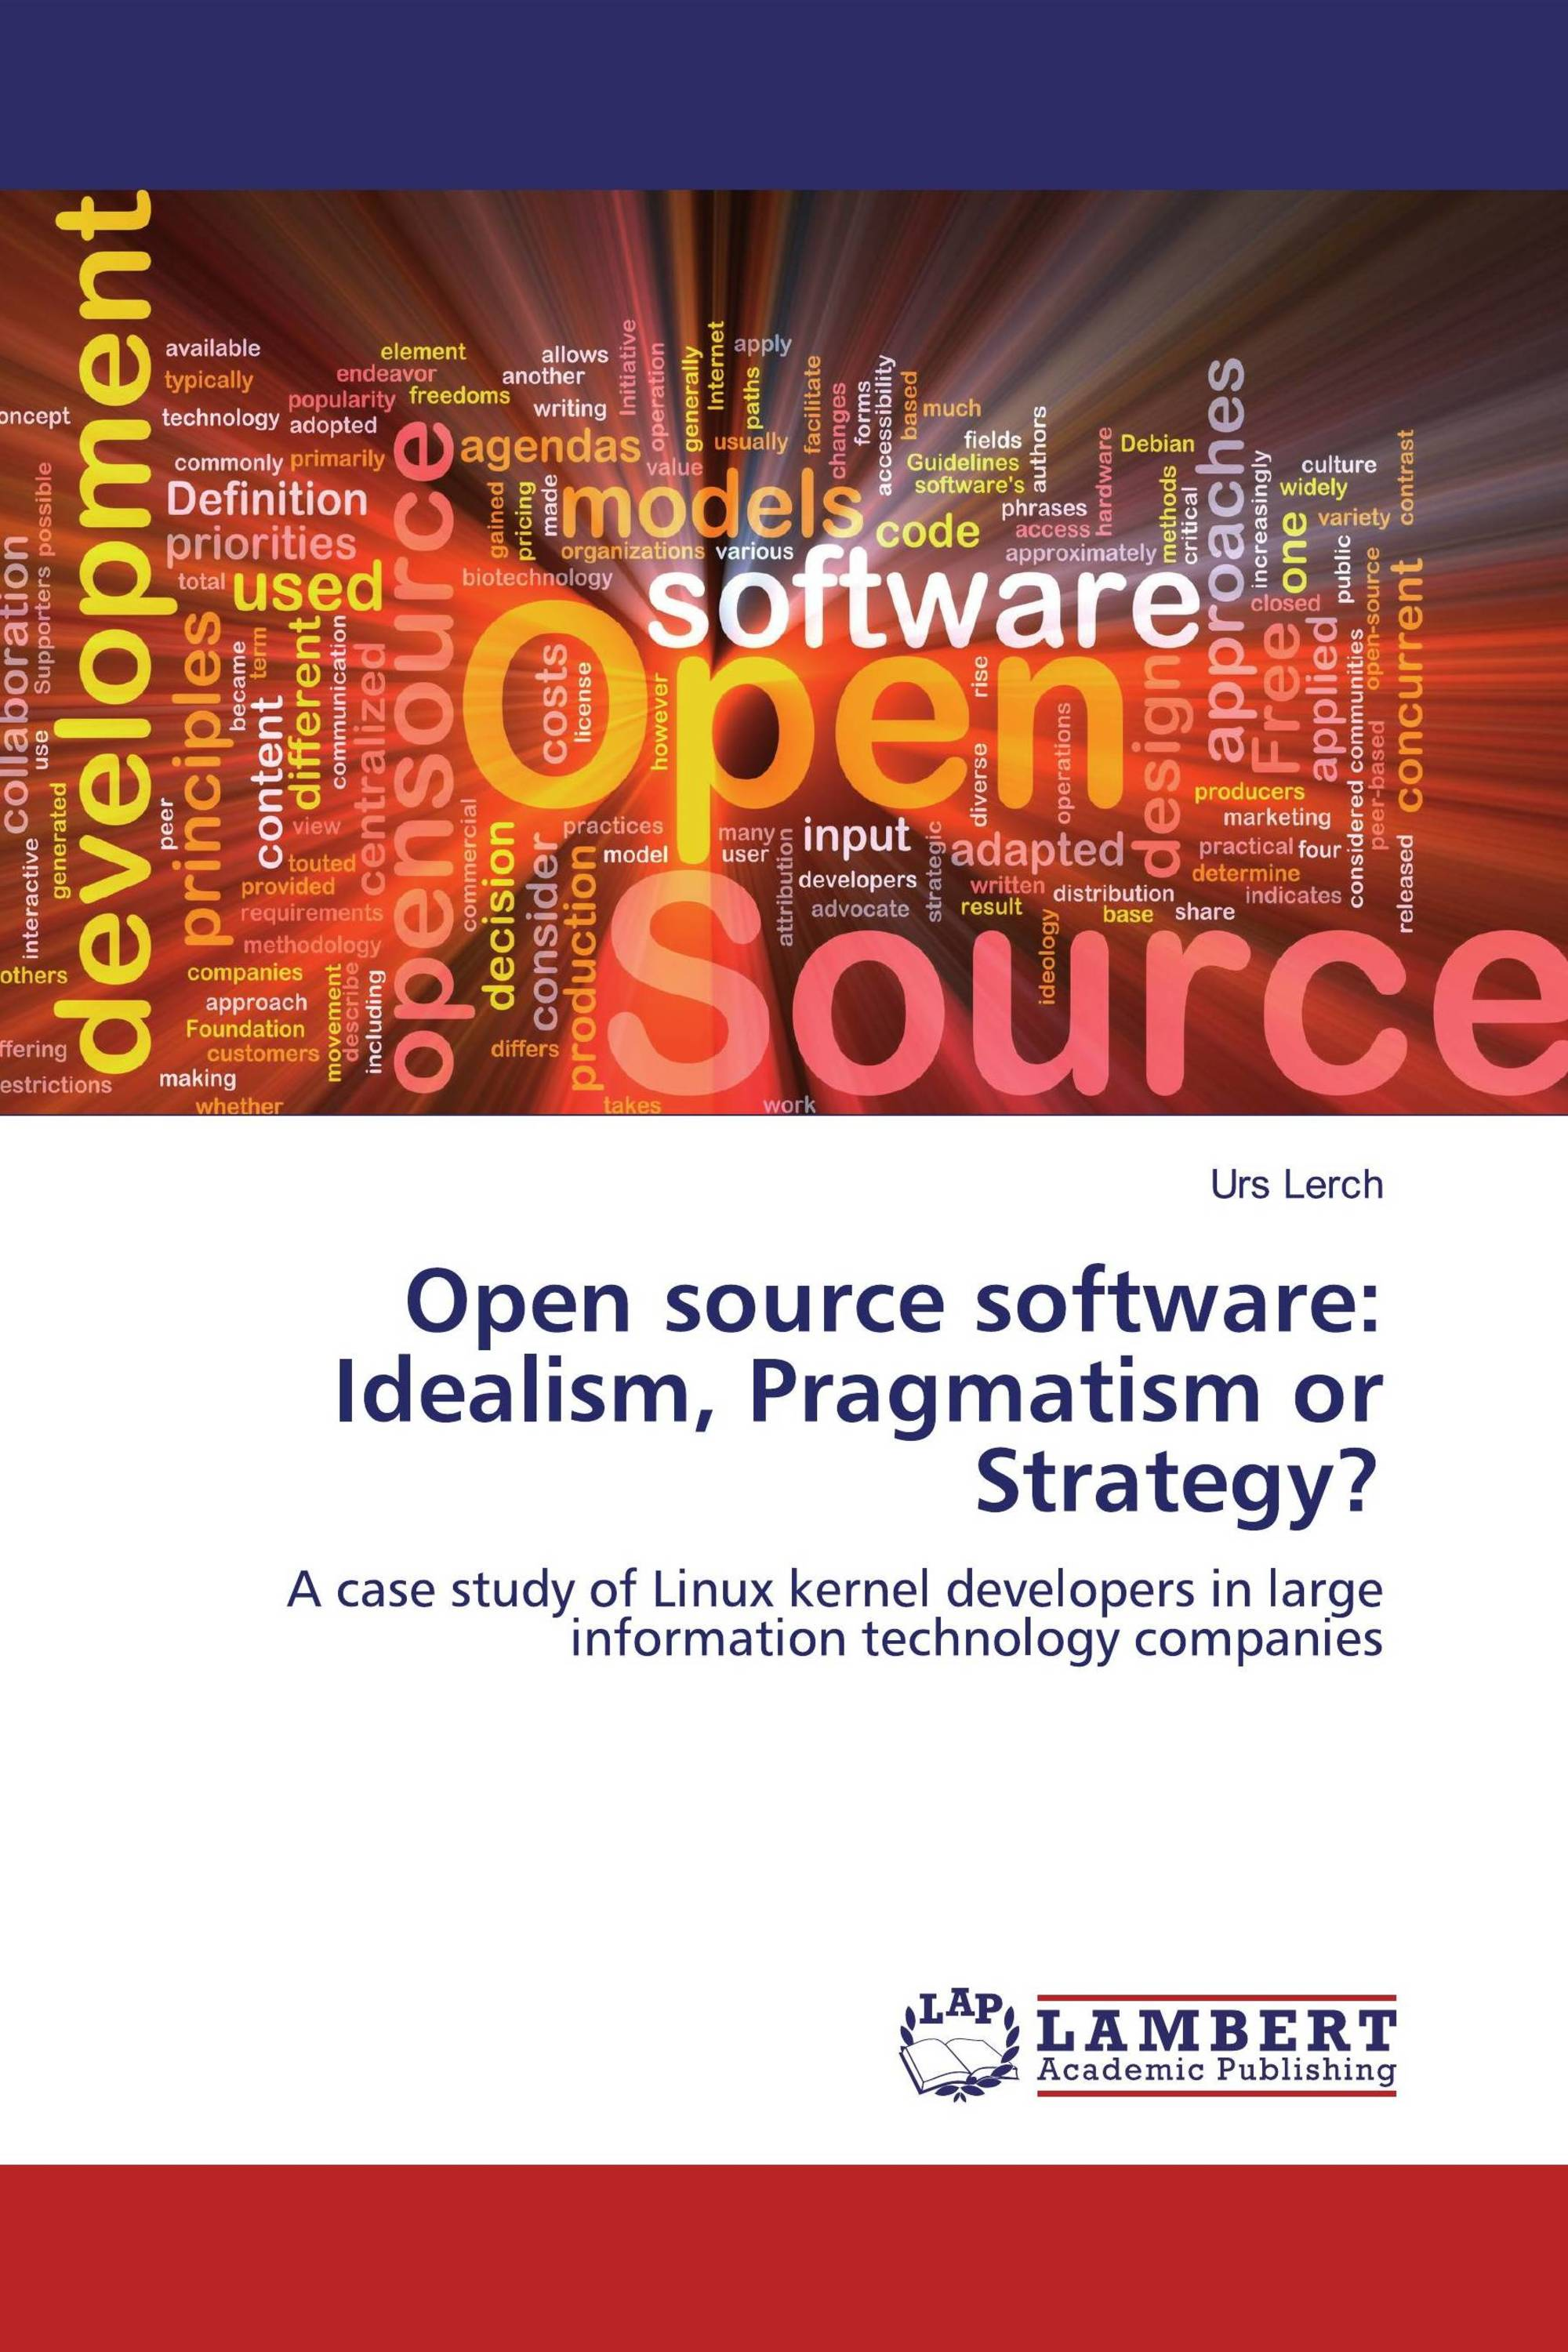 Open source software: Idealism, Pragmatism or Strategy?